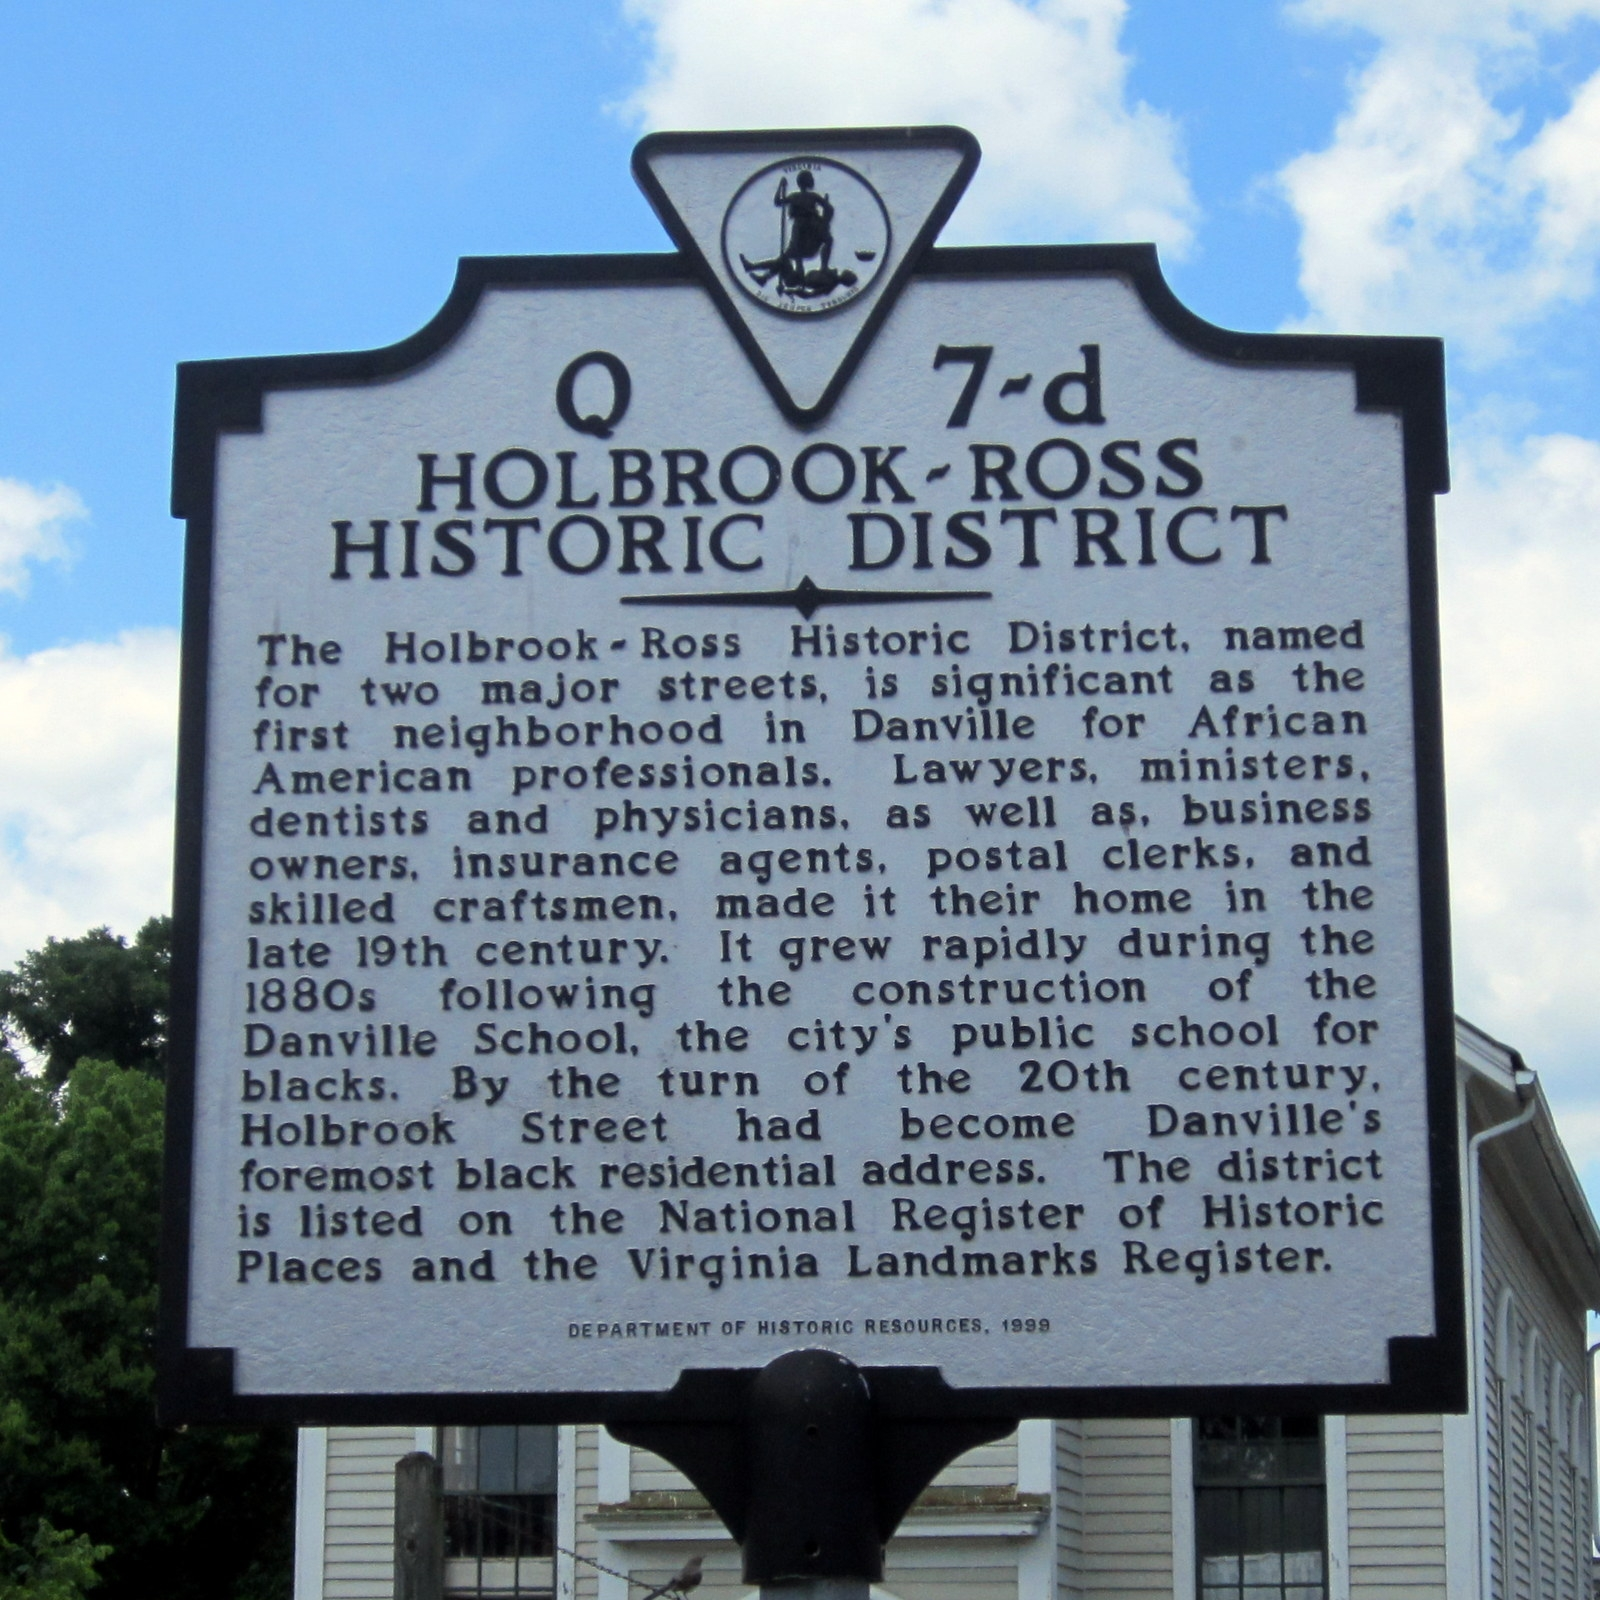 Holbrook-Ross Historic District Marker